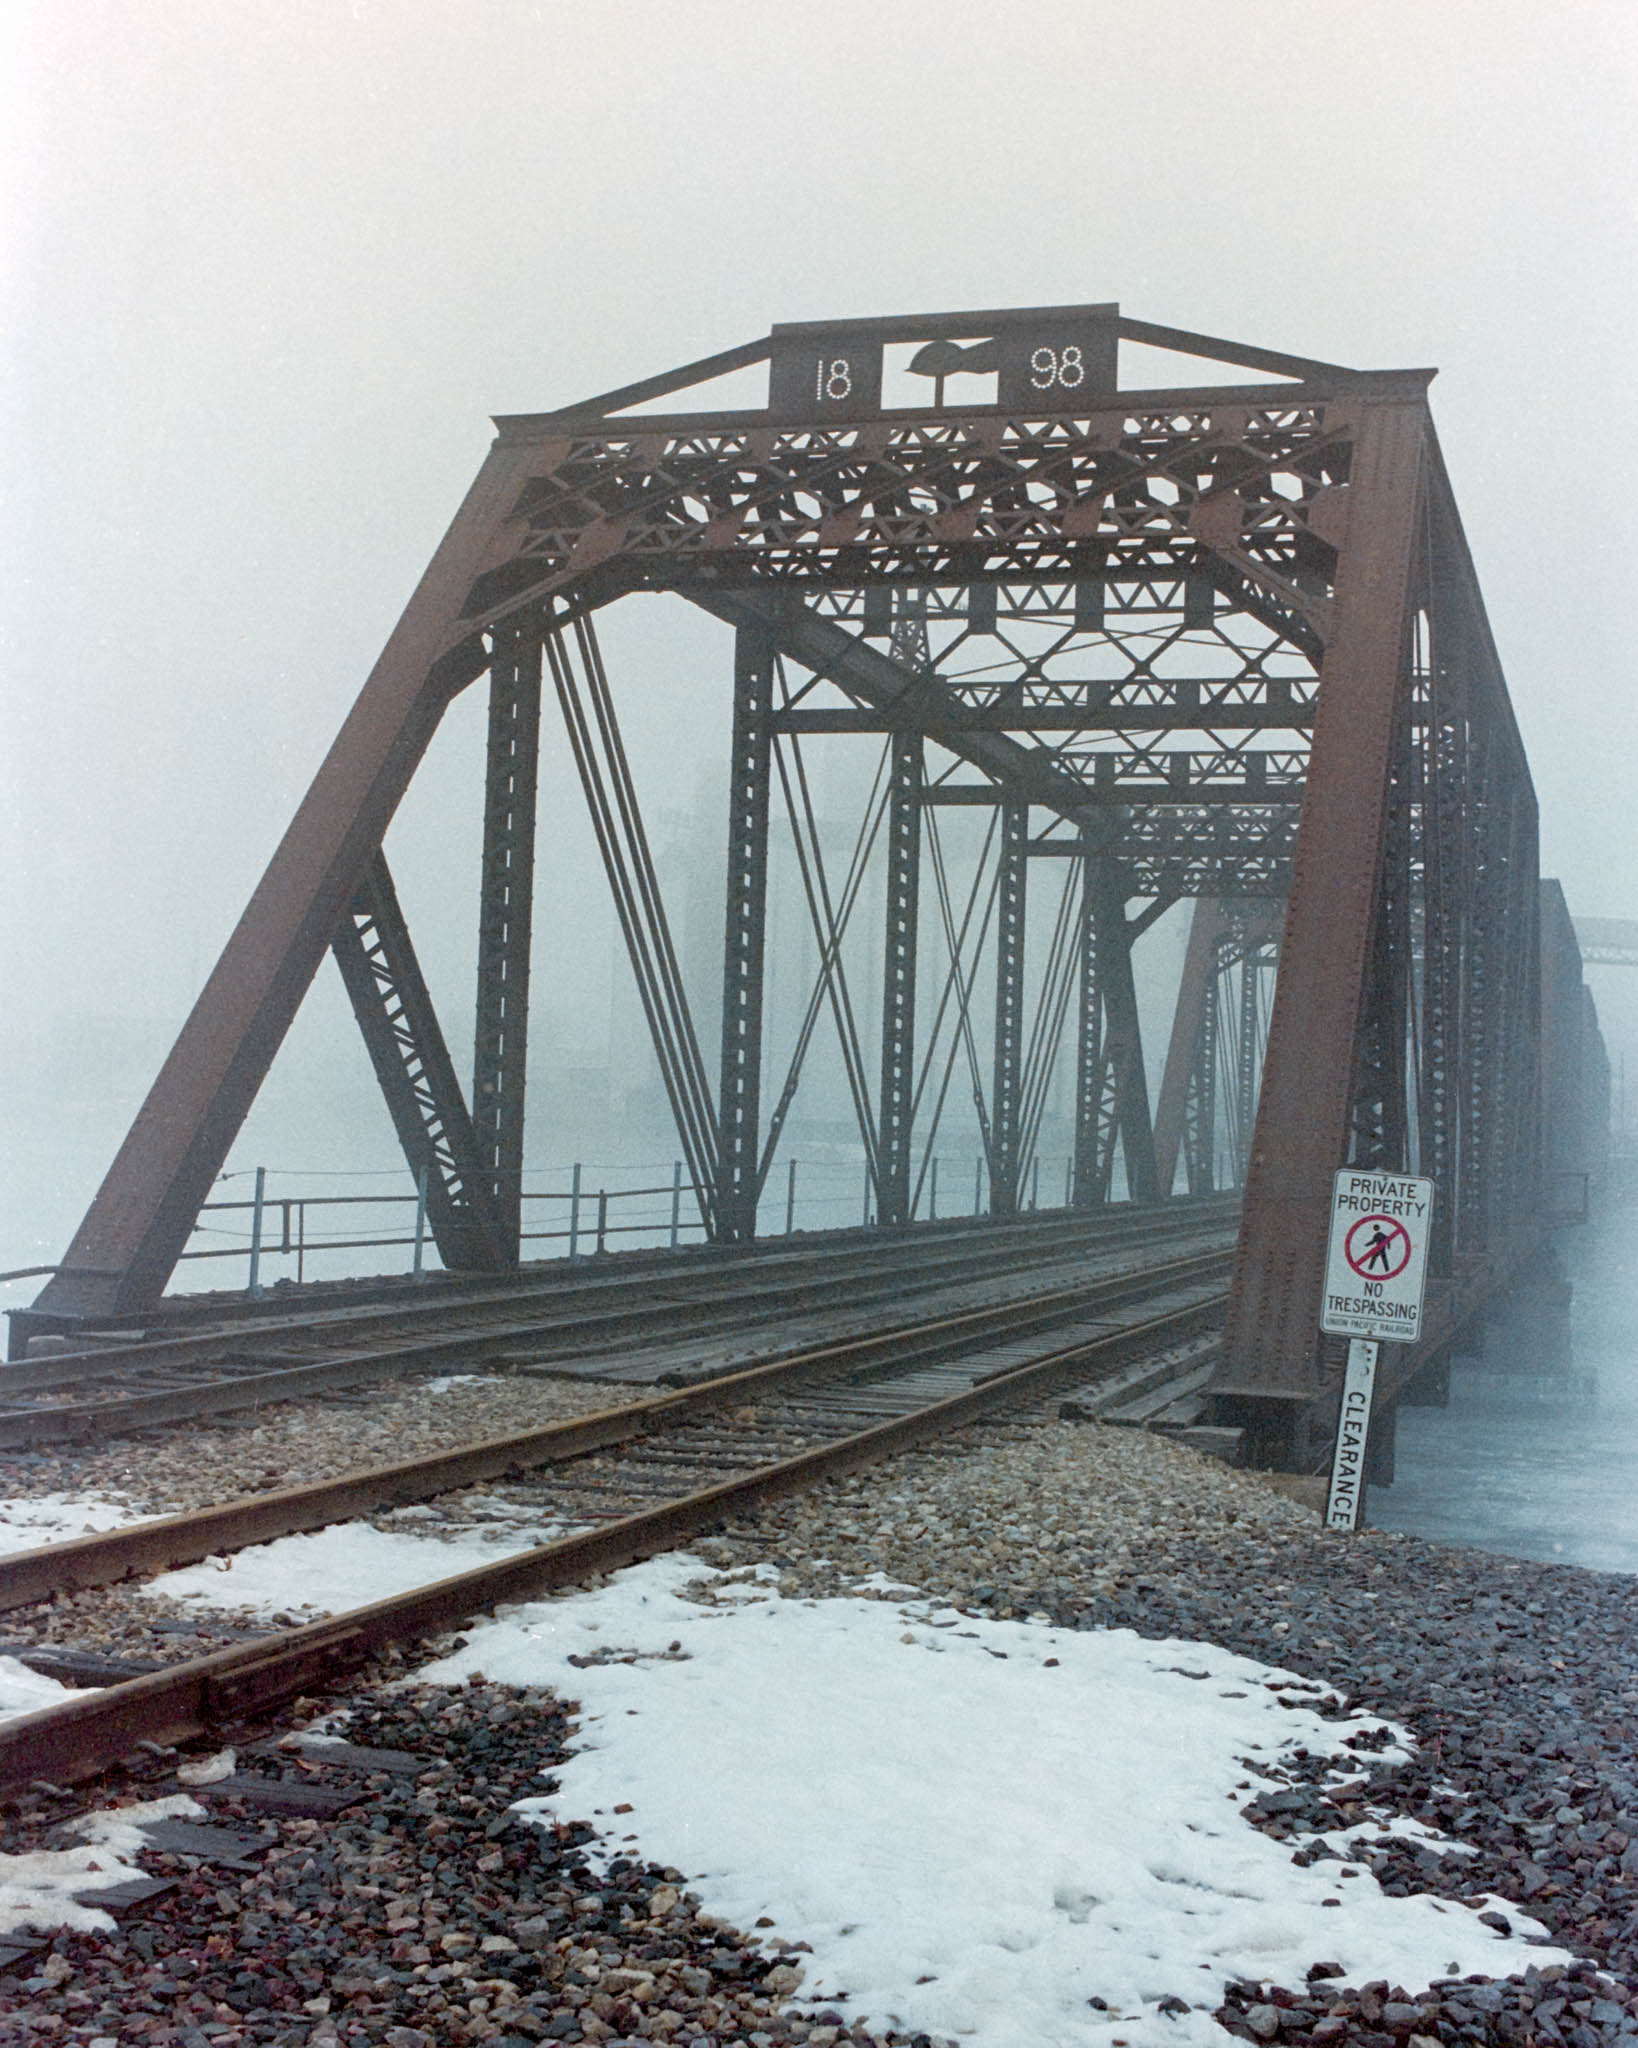 Quaker Oats railroad bridge in Cedar Rapids on a foggy winter day. Camera: Nikon N2020 with Fujifilm Superia 400